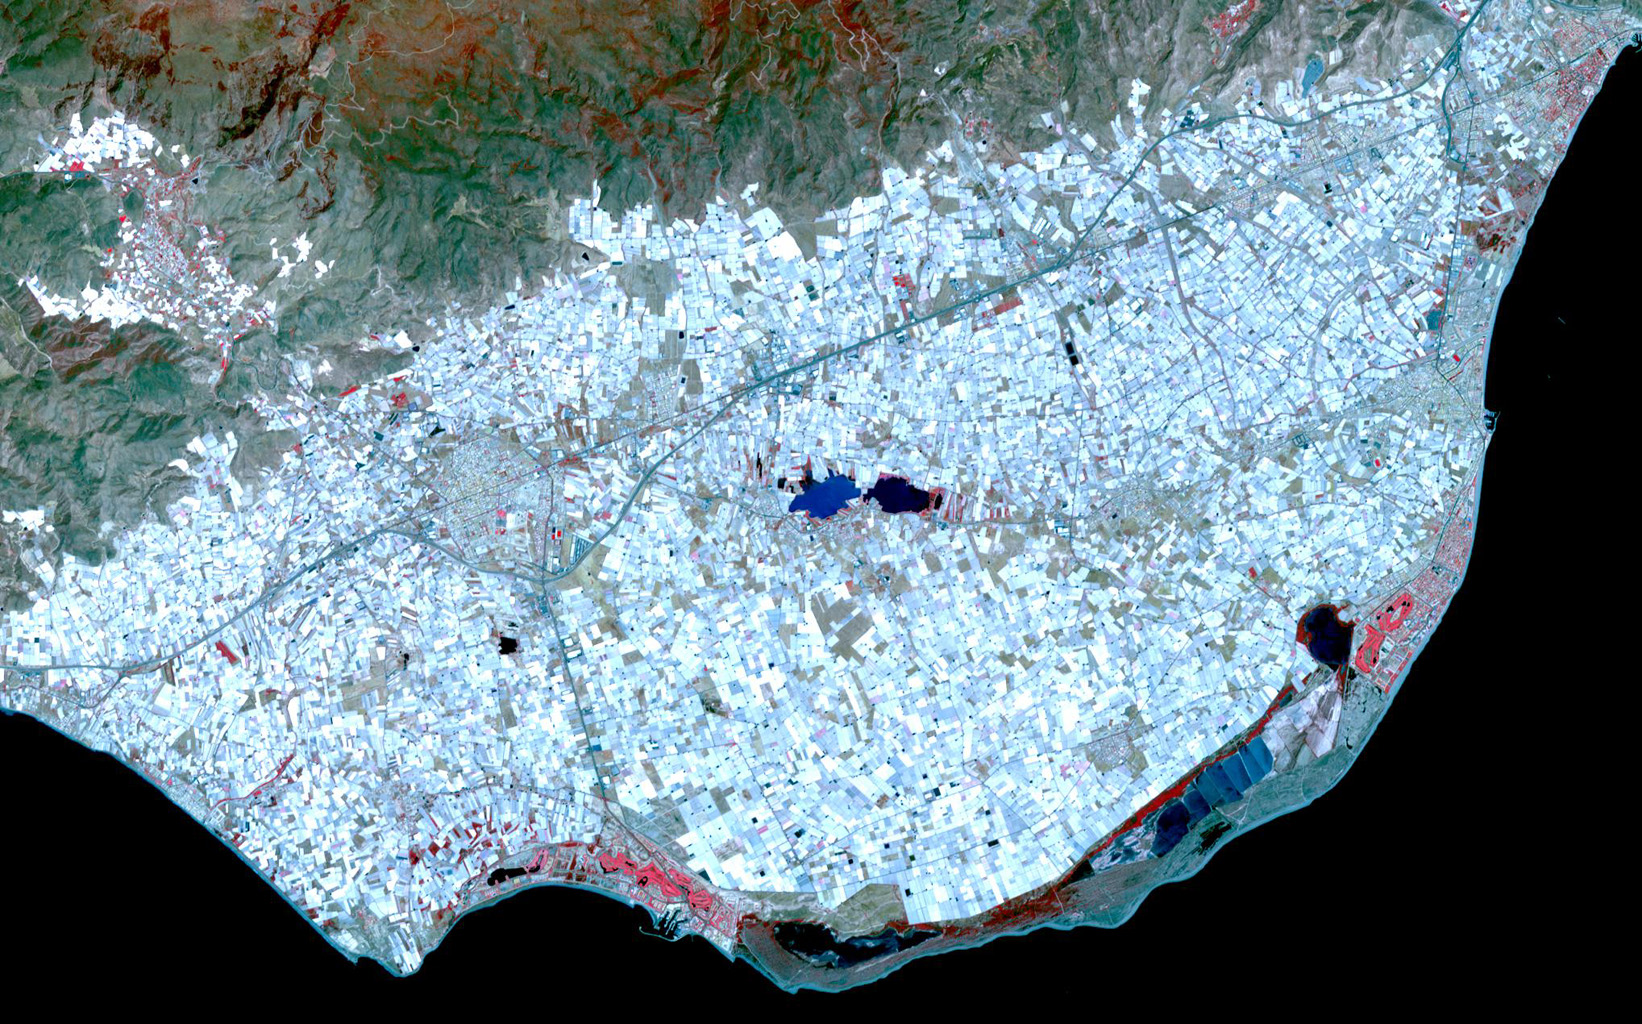 Surrounding the town of El Ejido, Almeria Province, southern Spain is a sea of greenhouses, stretching for tens of kilometers as shown in this image from NASA's Terra spacecraft.